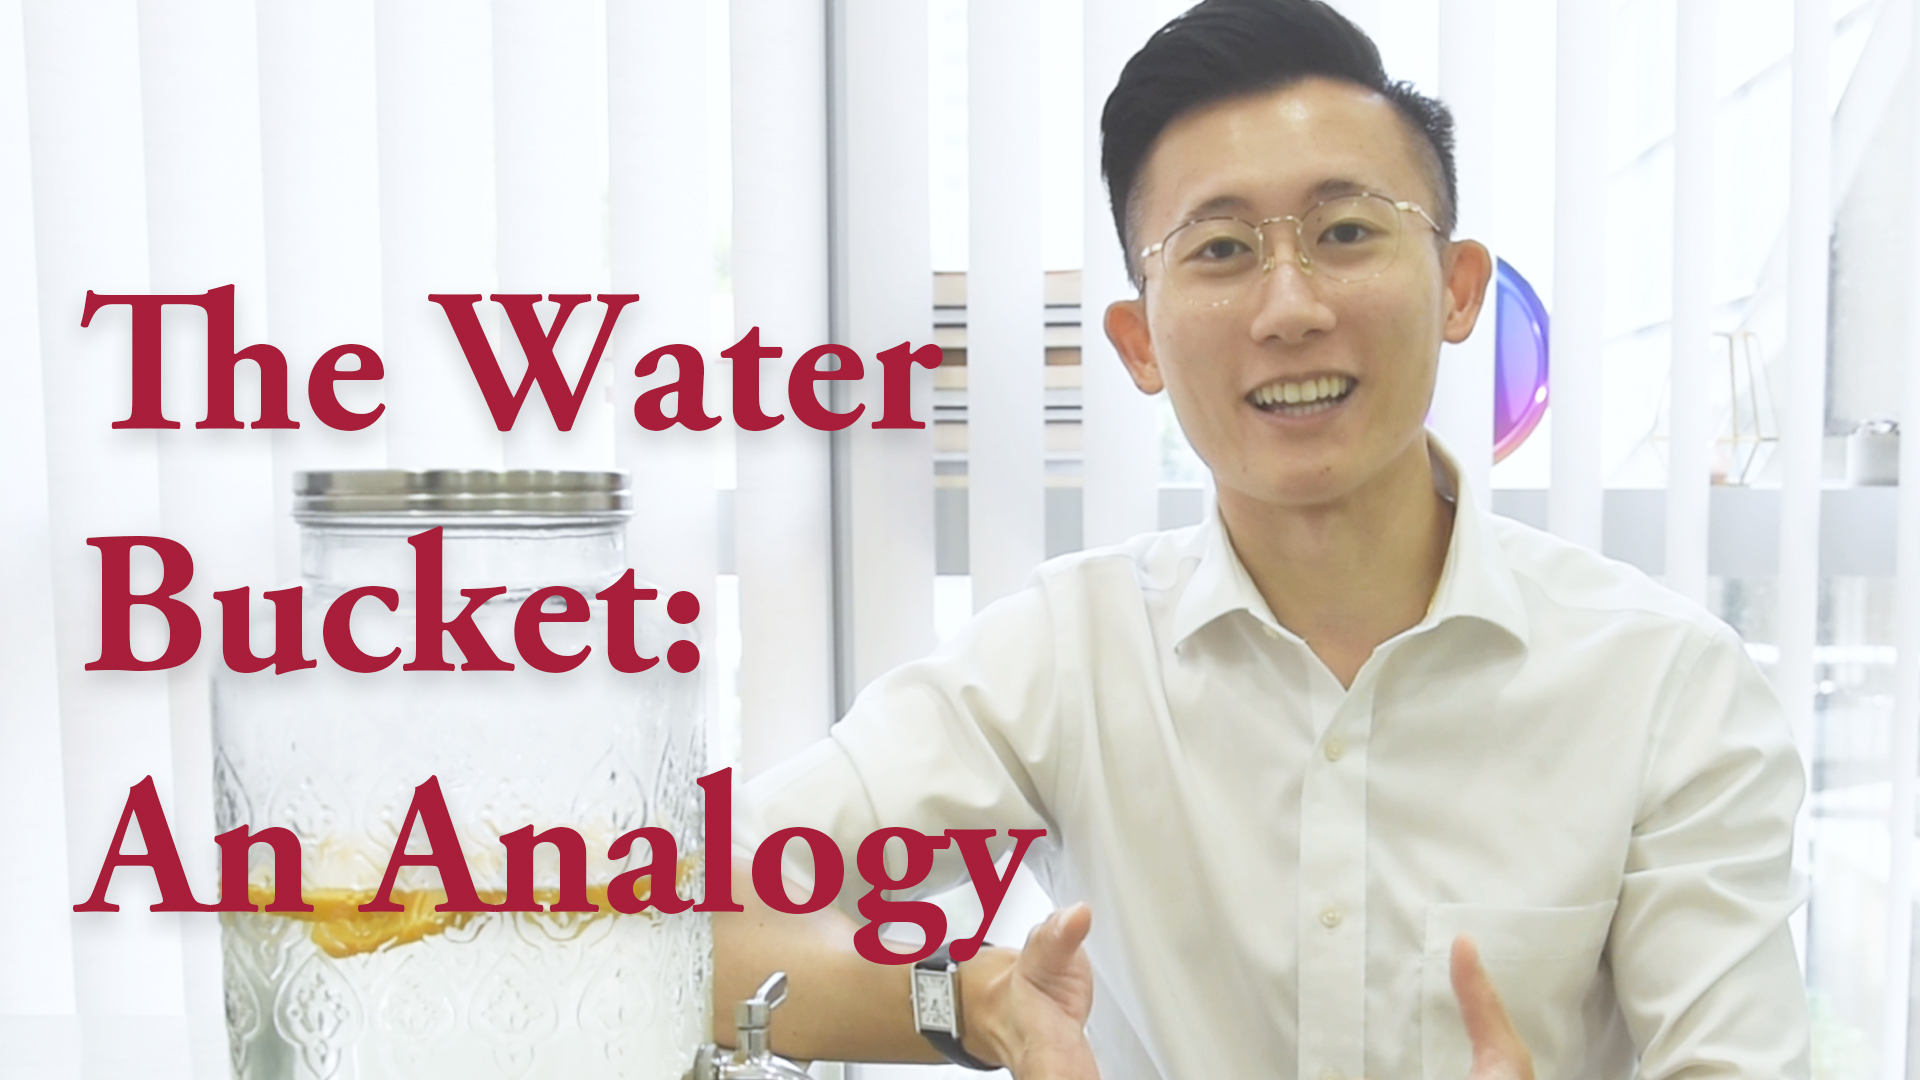 The Water Bucket: An Analogy